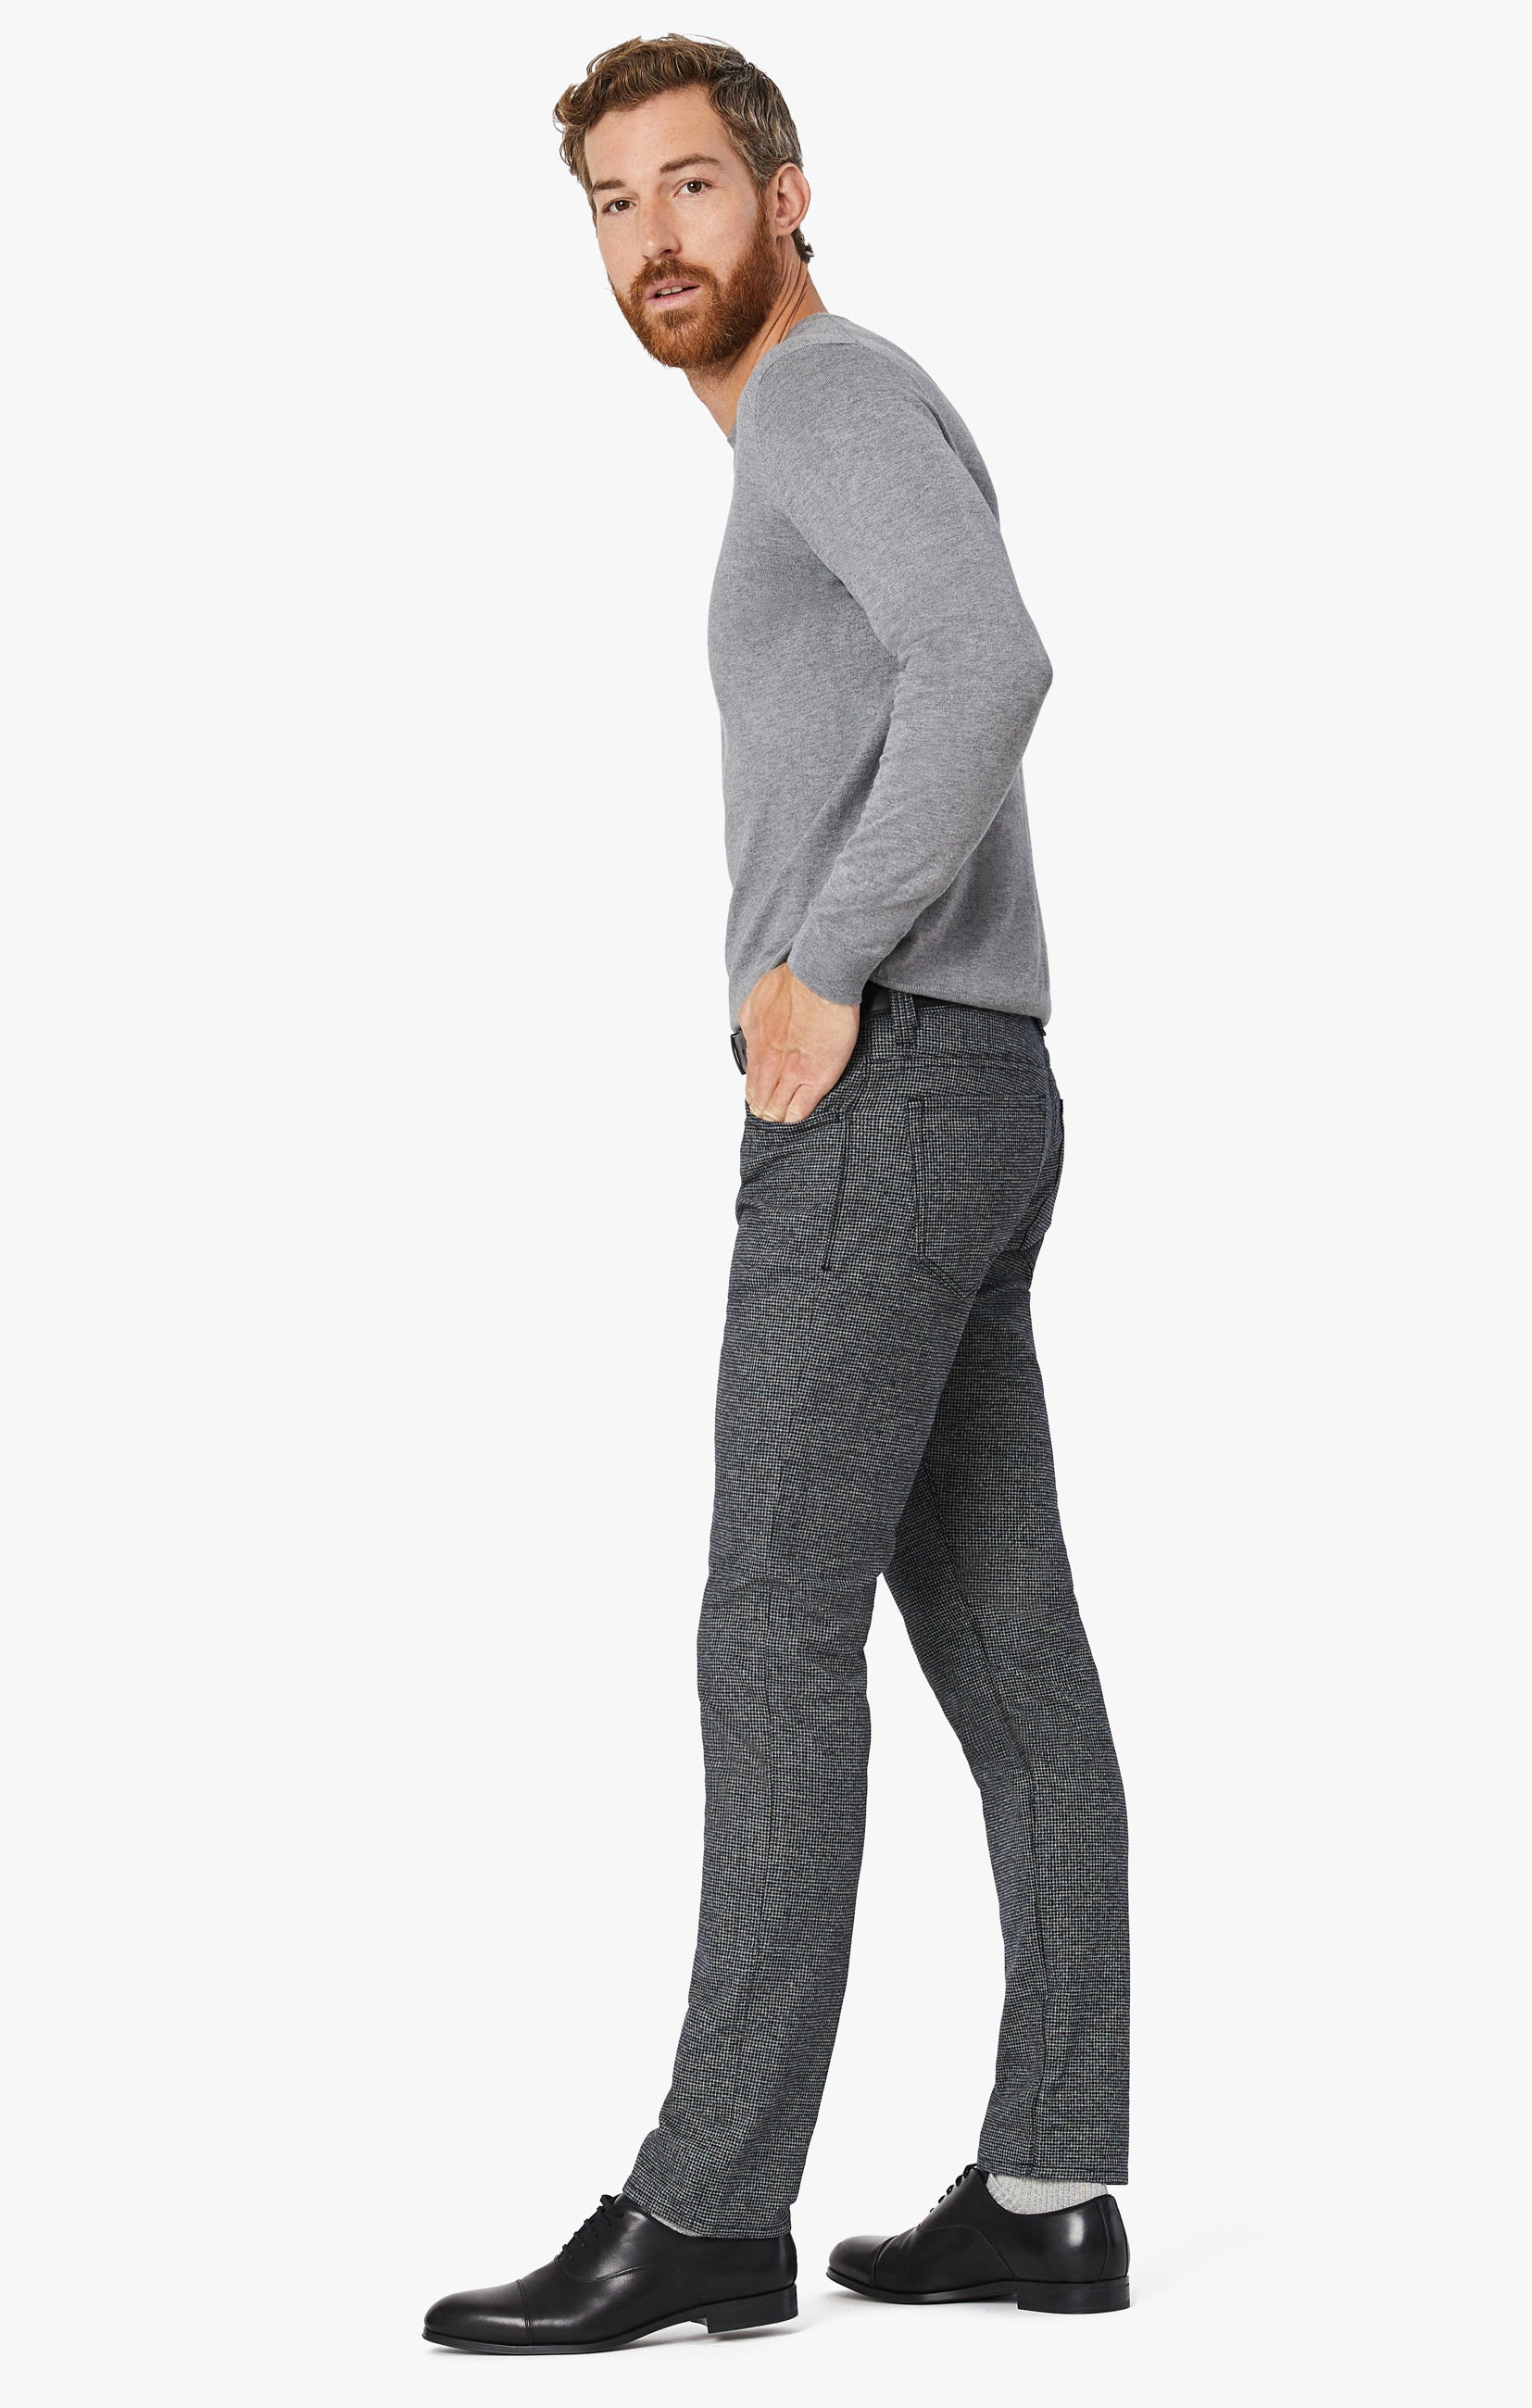 Courage Straight Leg Pants In Grey Houndstooth Image 8